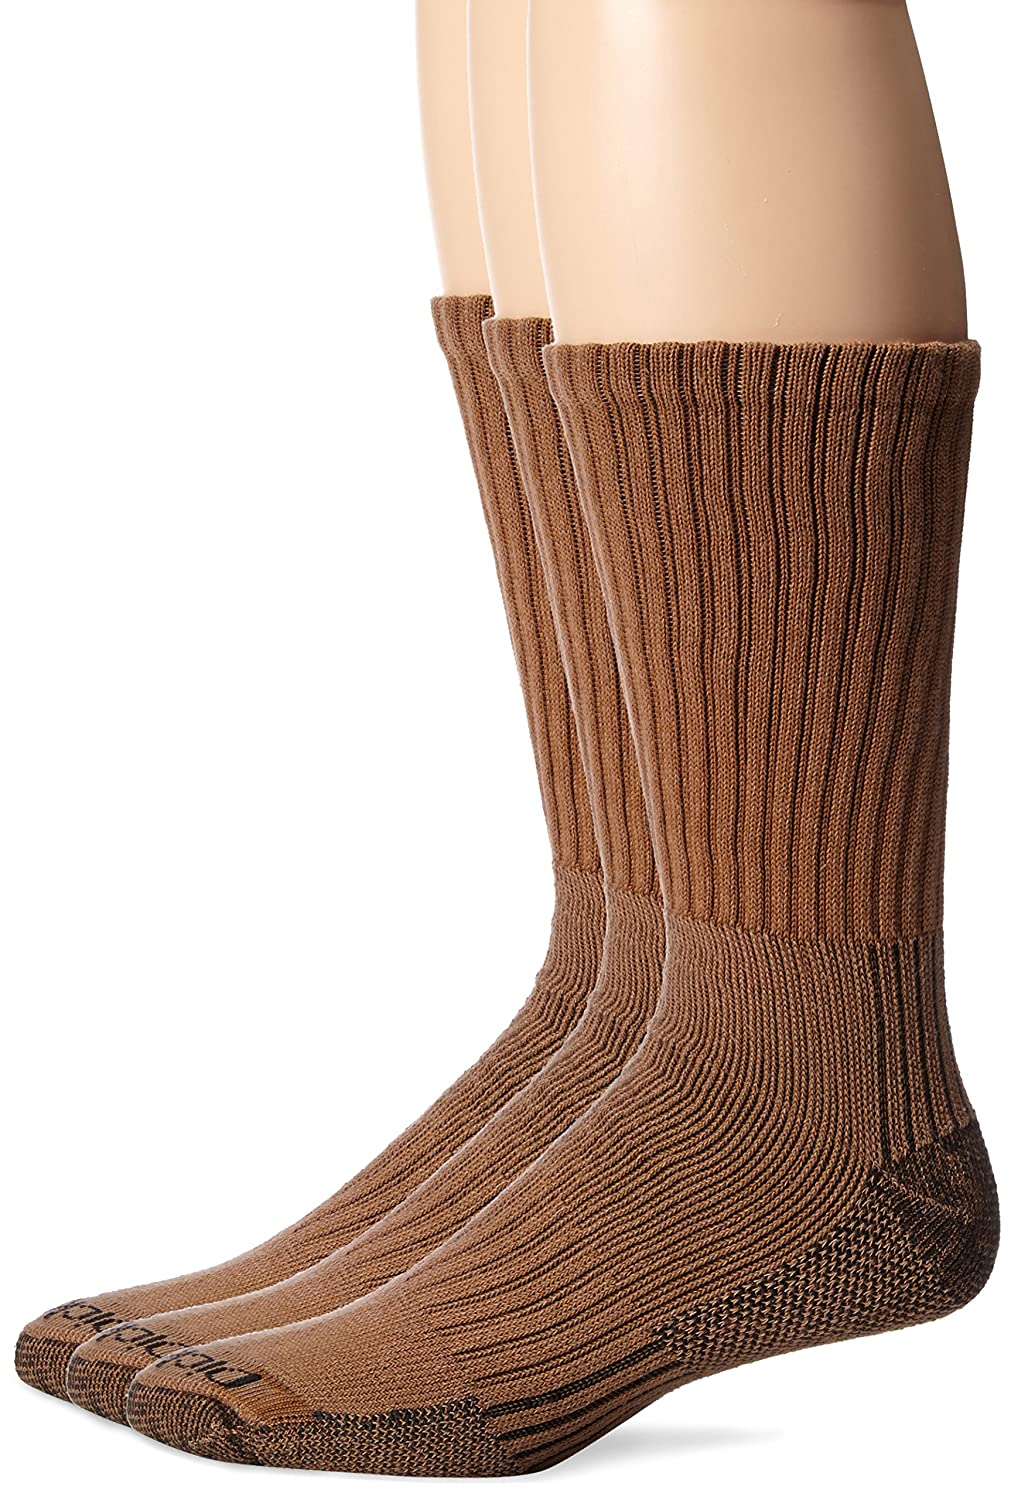 Dickies Men's 3 Pack Heavyweight Cushion Compression Work Crew Socks Dickies - Royce Too I12180